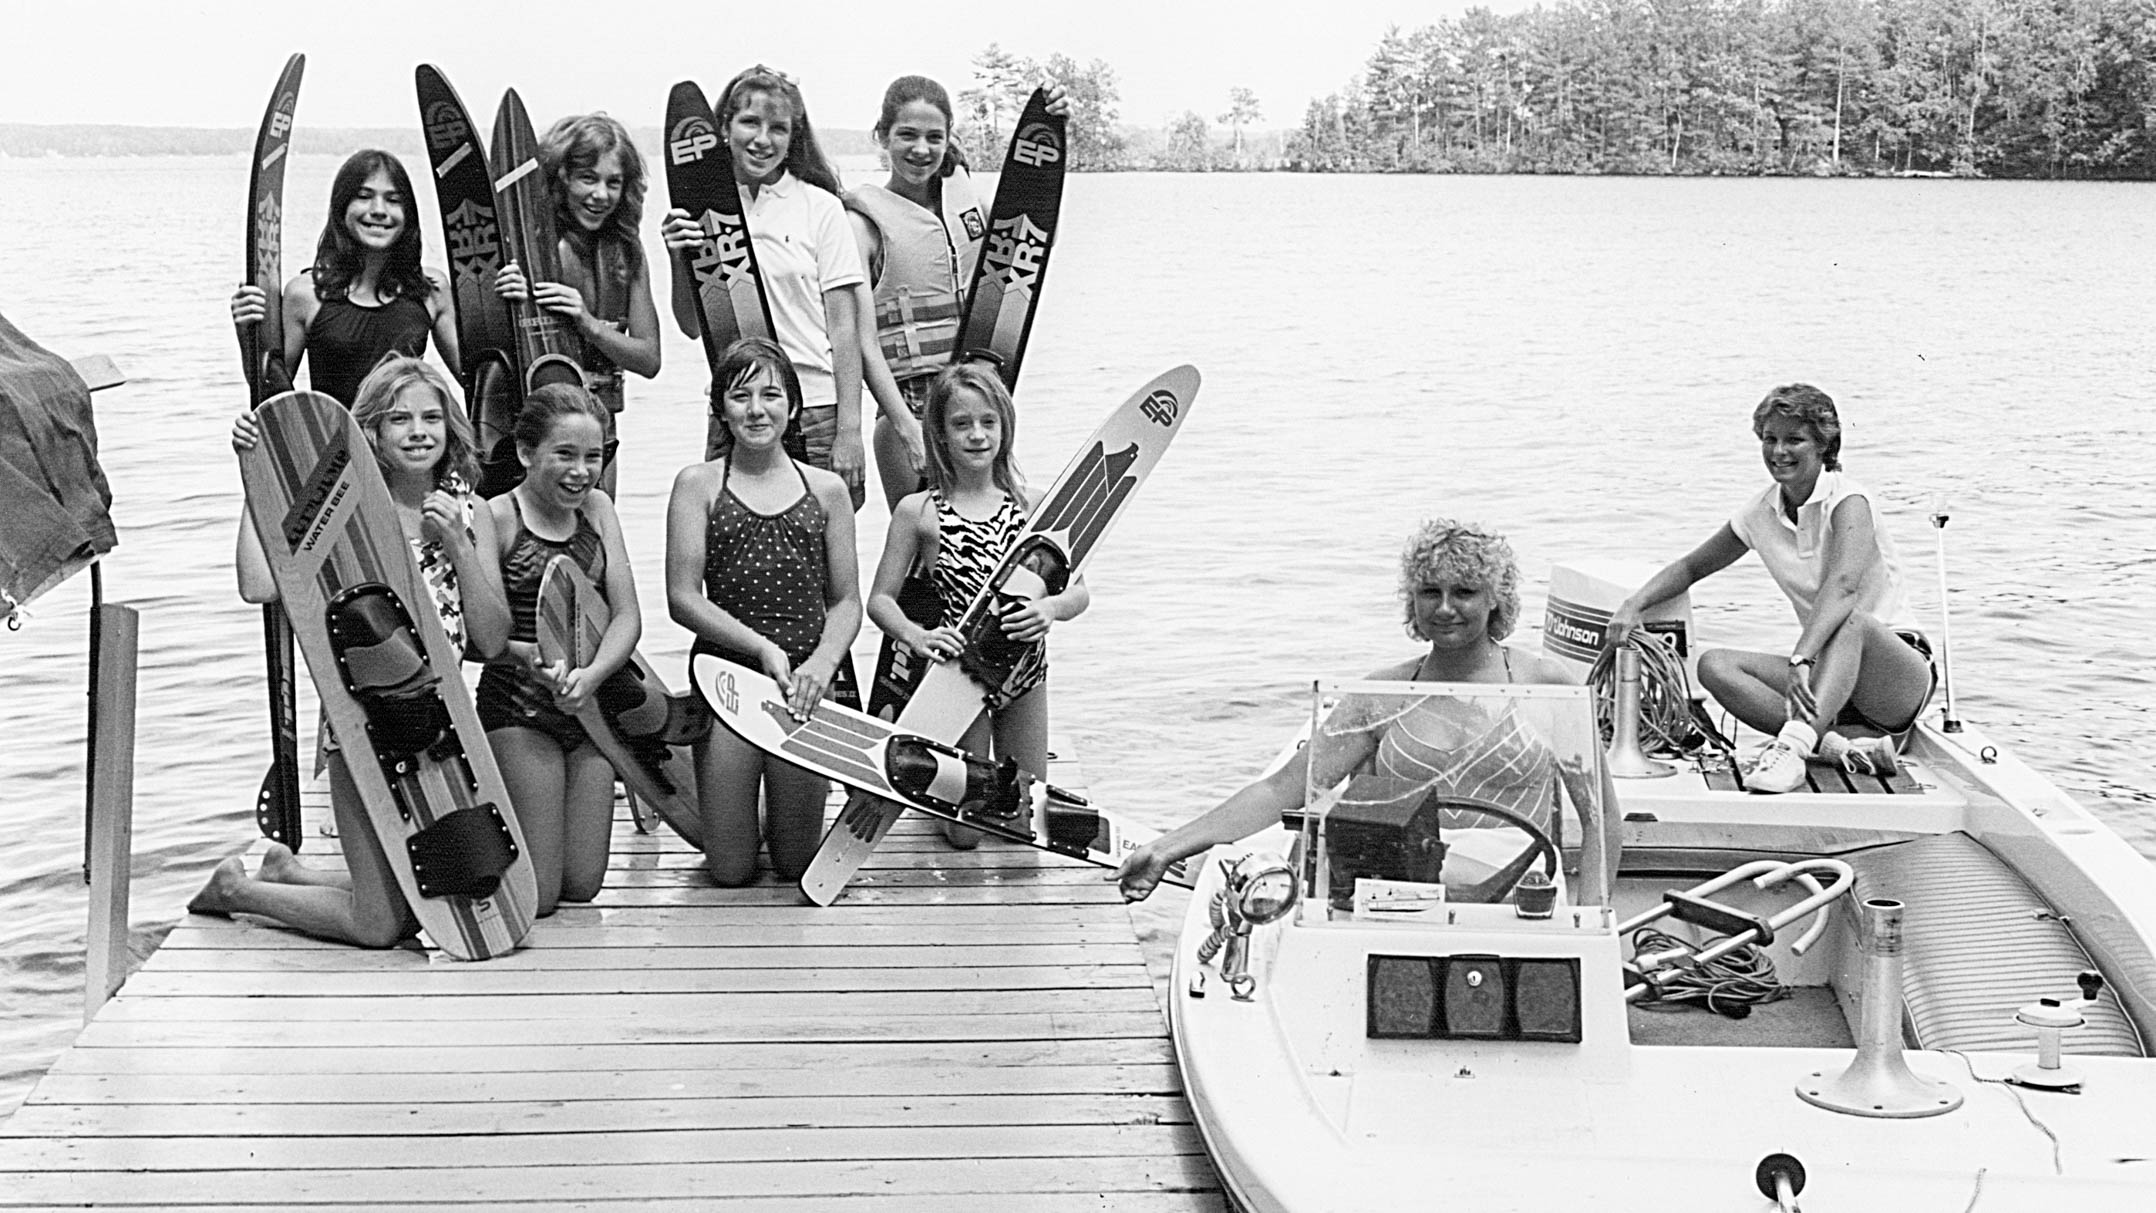 Black and white photo of camper preparing to waterski in 1983